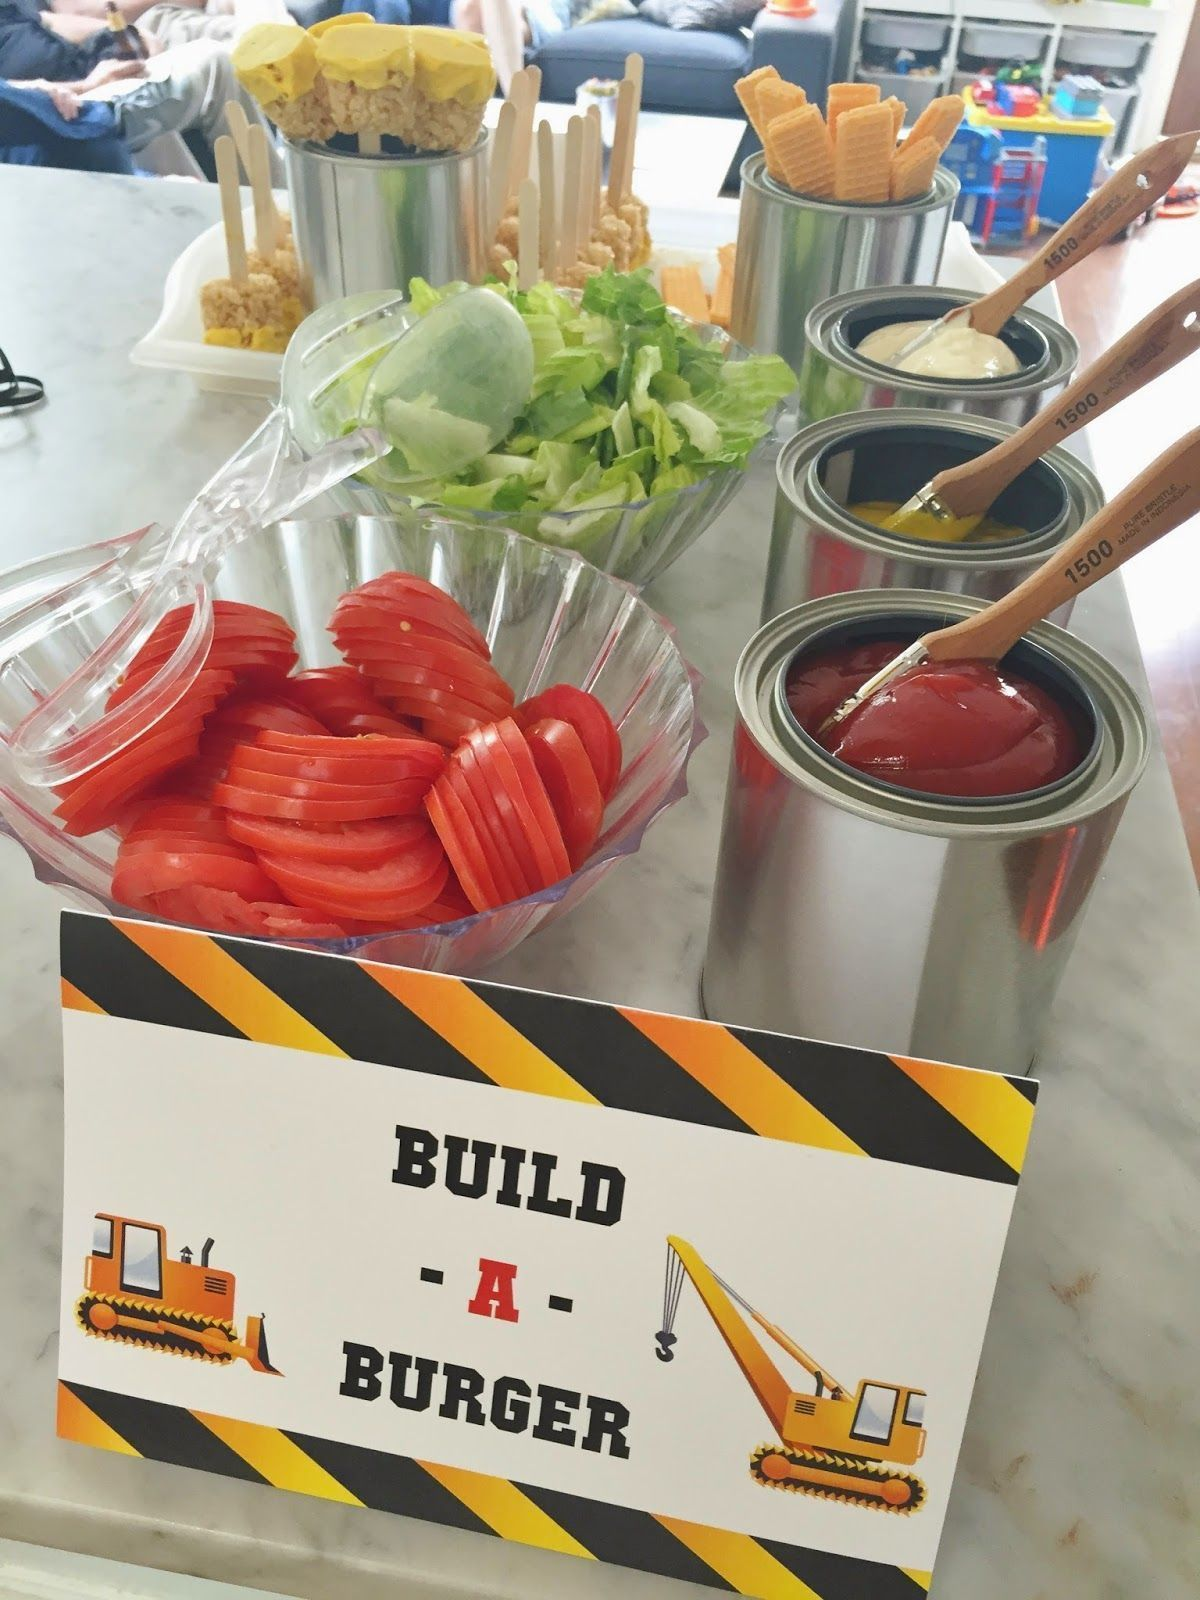 Birthday Party Ideas Build-a-Burger food station for a construction-themed birthday party. Empty paint cans with small paint brushes make a great way to serve and display condiments. See more photos, dcor and DIY project details from this party at .Build-a-Burger food station for a construction-themed ...